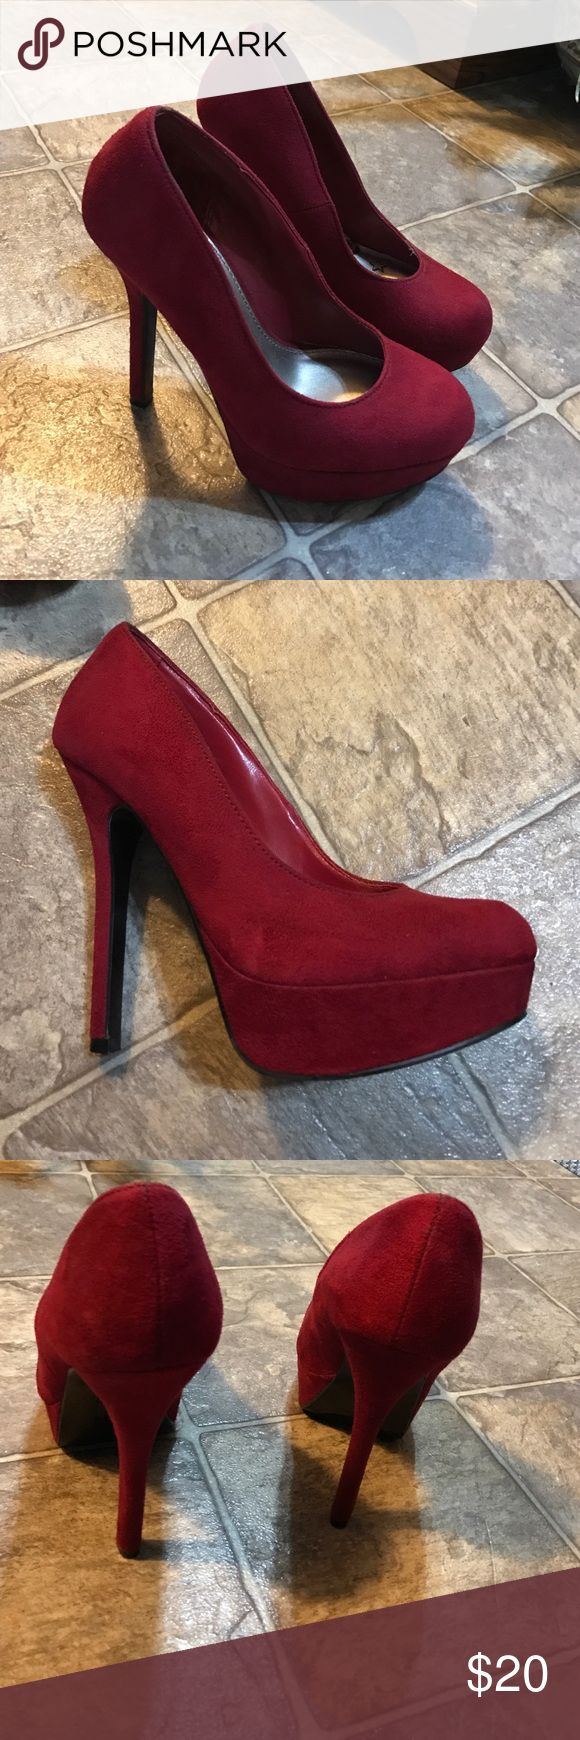 Red platform heels that are a soft material Red brash heels worn a few times but in excellent condition Shoes Heels